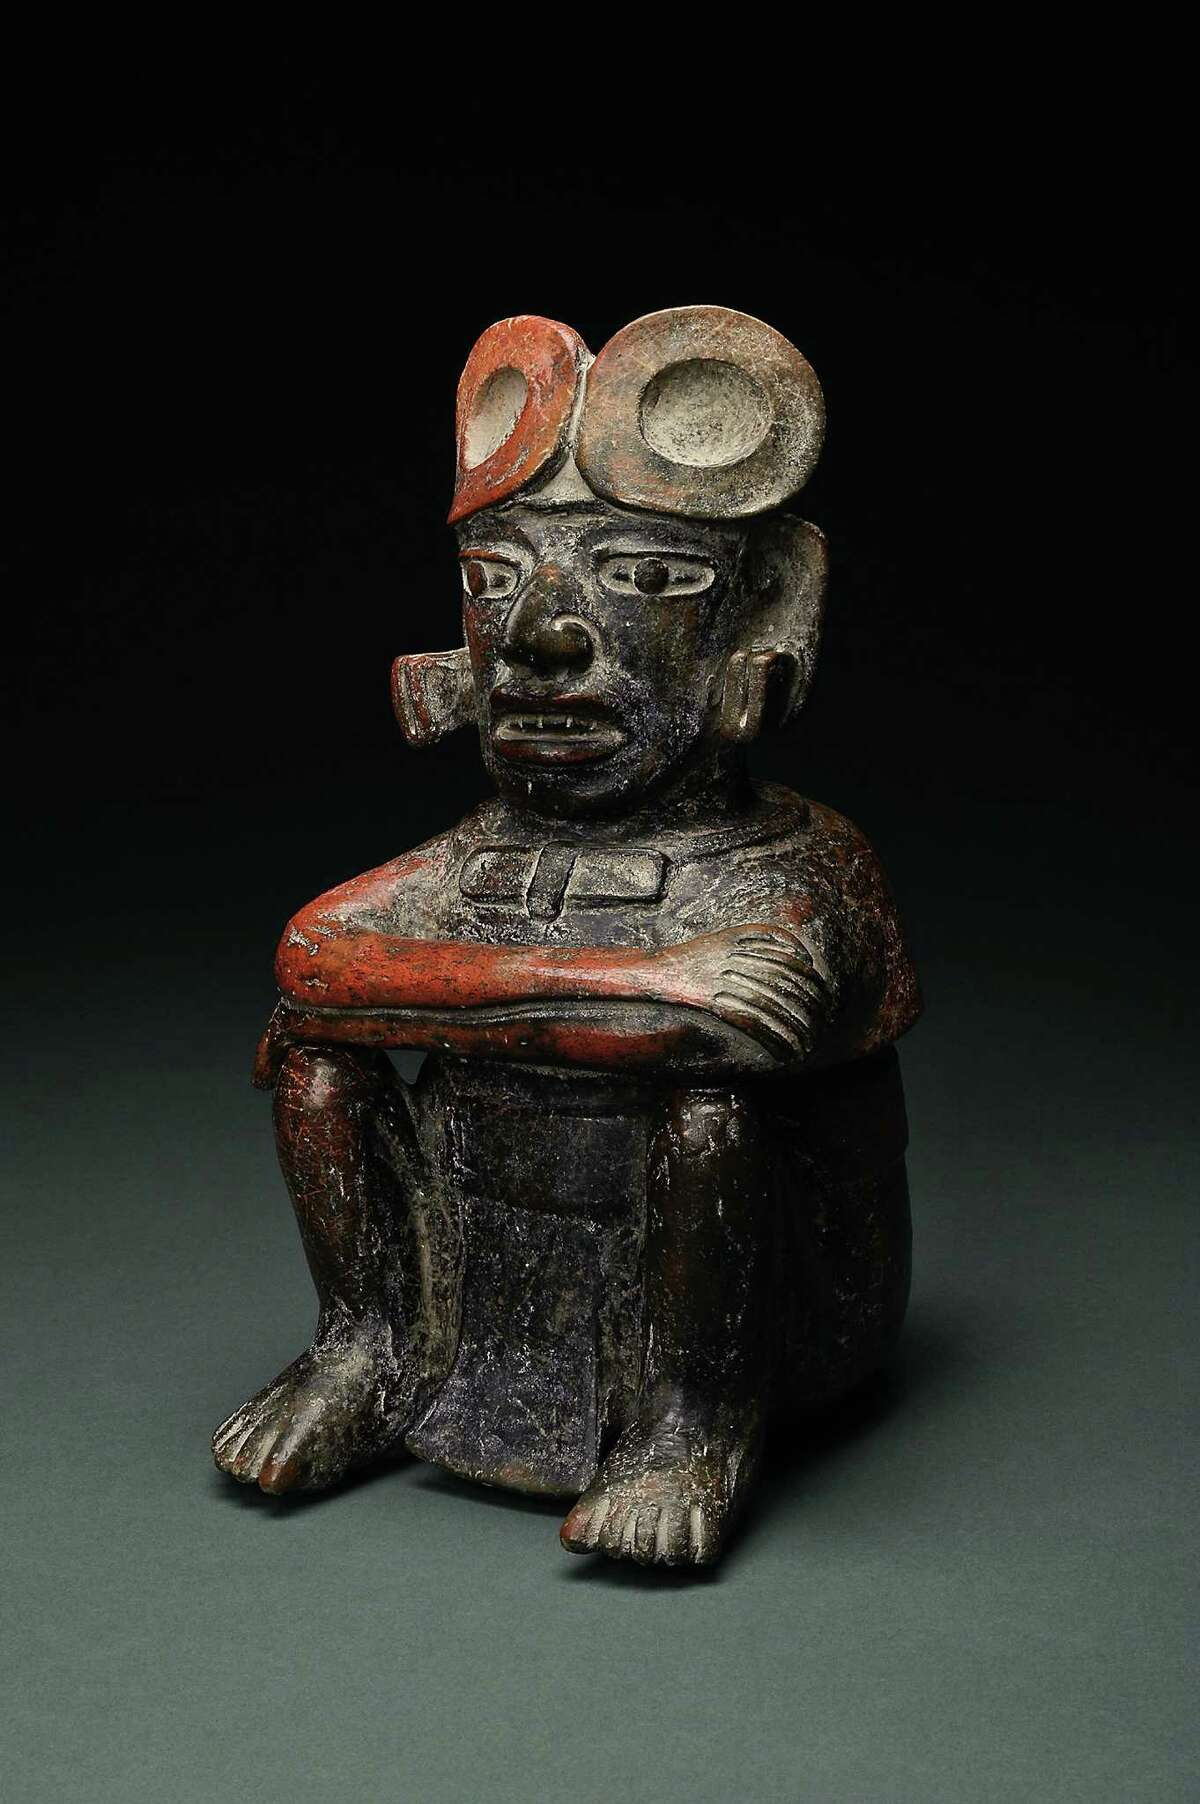 Vessel in the Form of a Warrior With Arms Crossed, an ancient Mayan work from Guatemala, is one of the highlights of the SAMA collection featured in the museum's new handbook